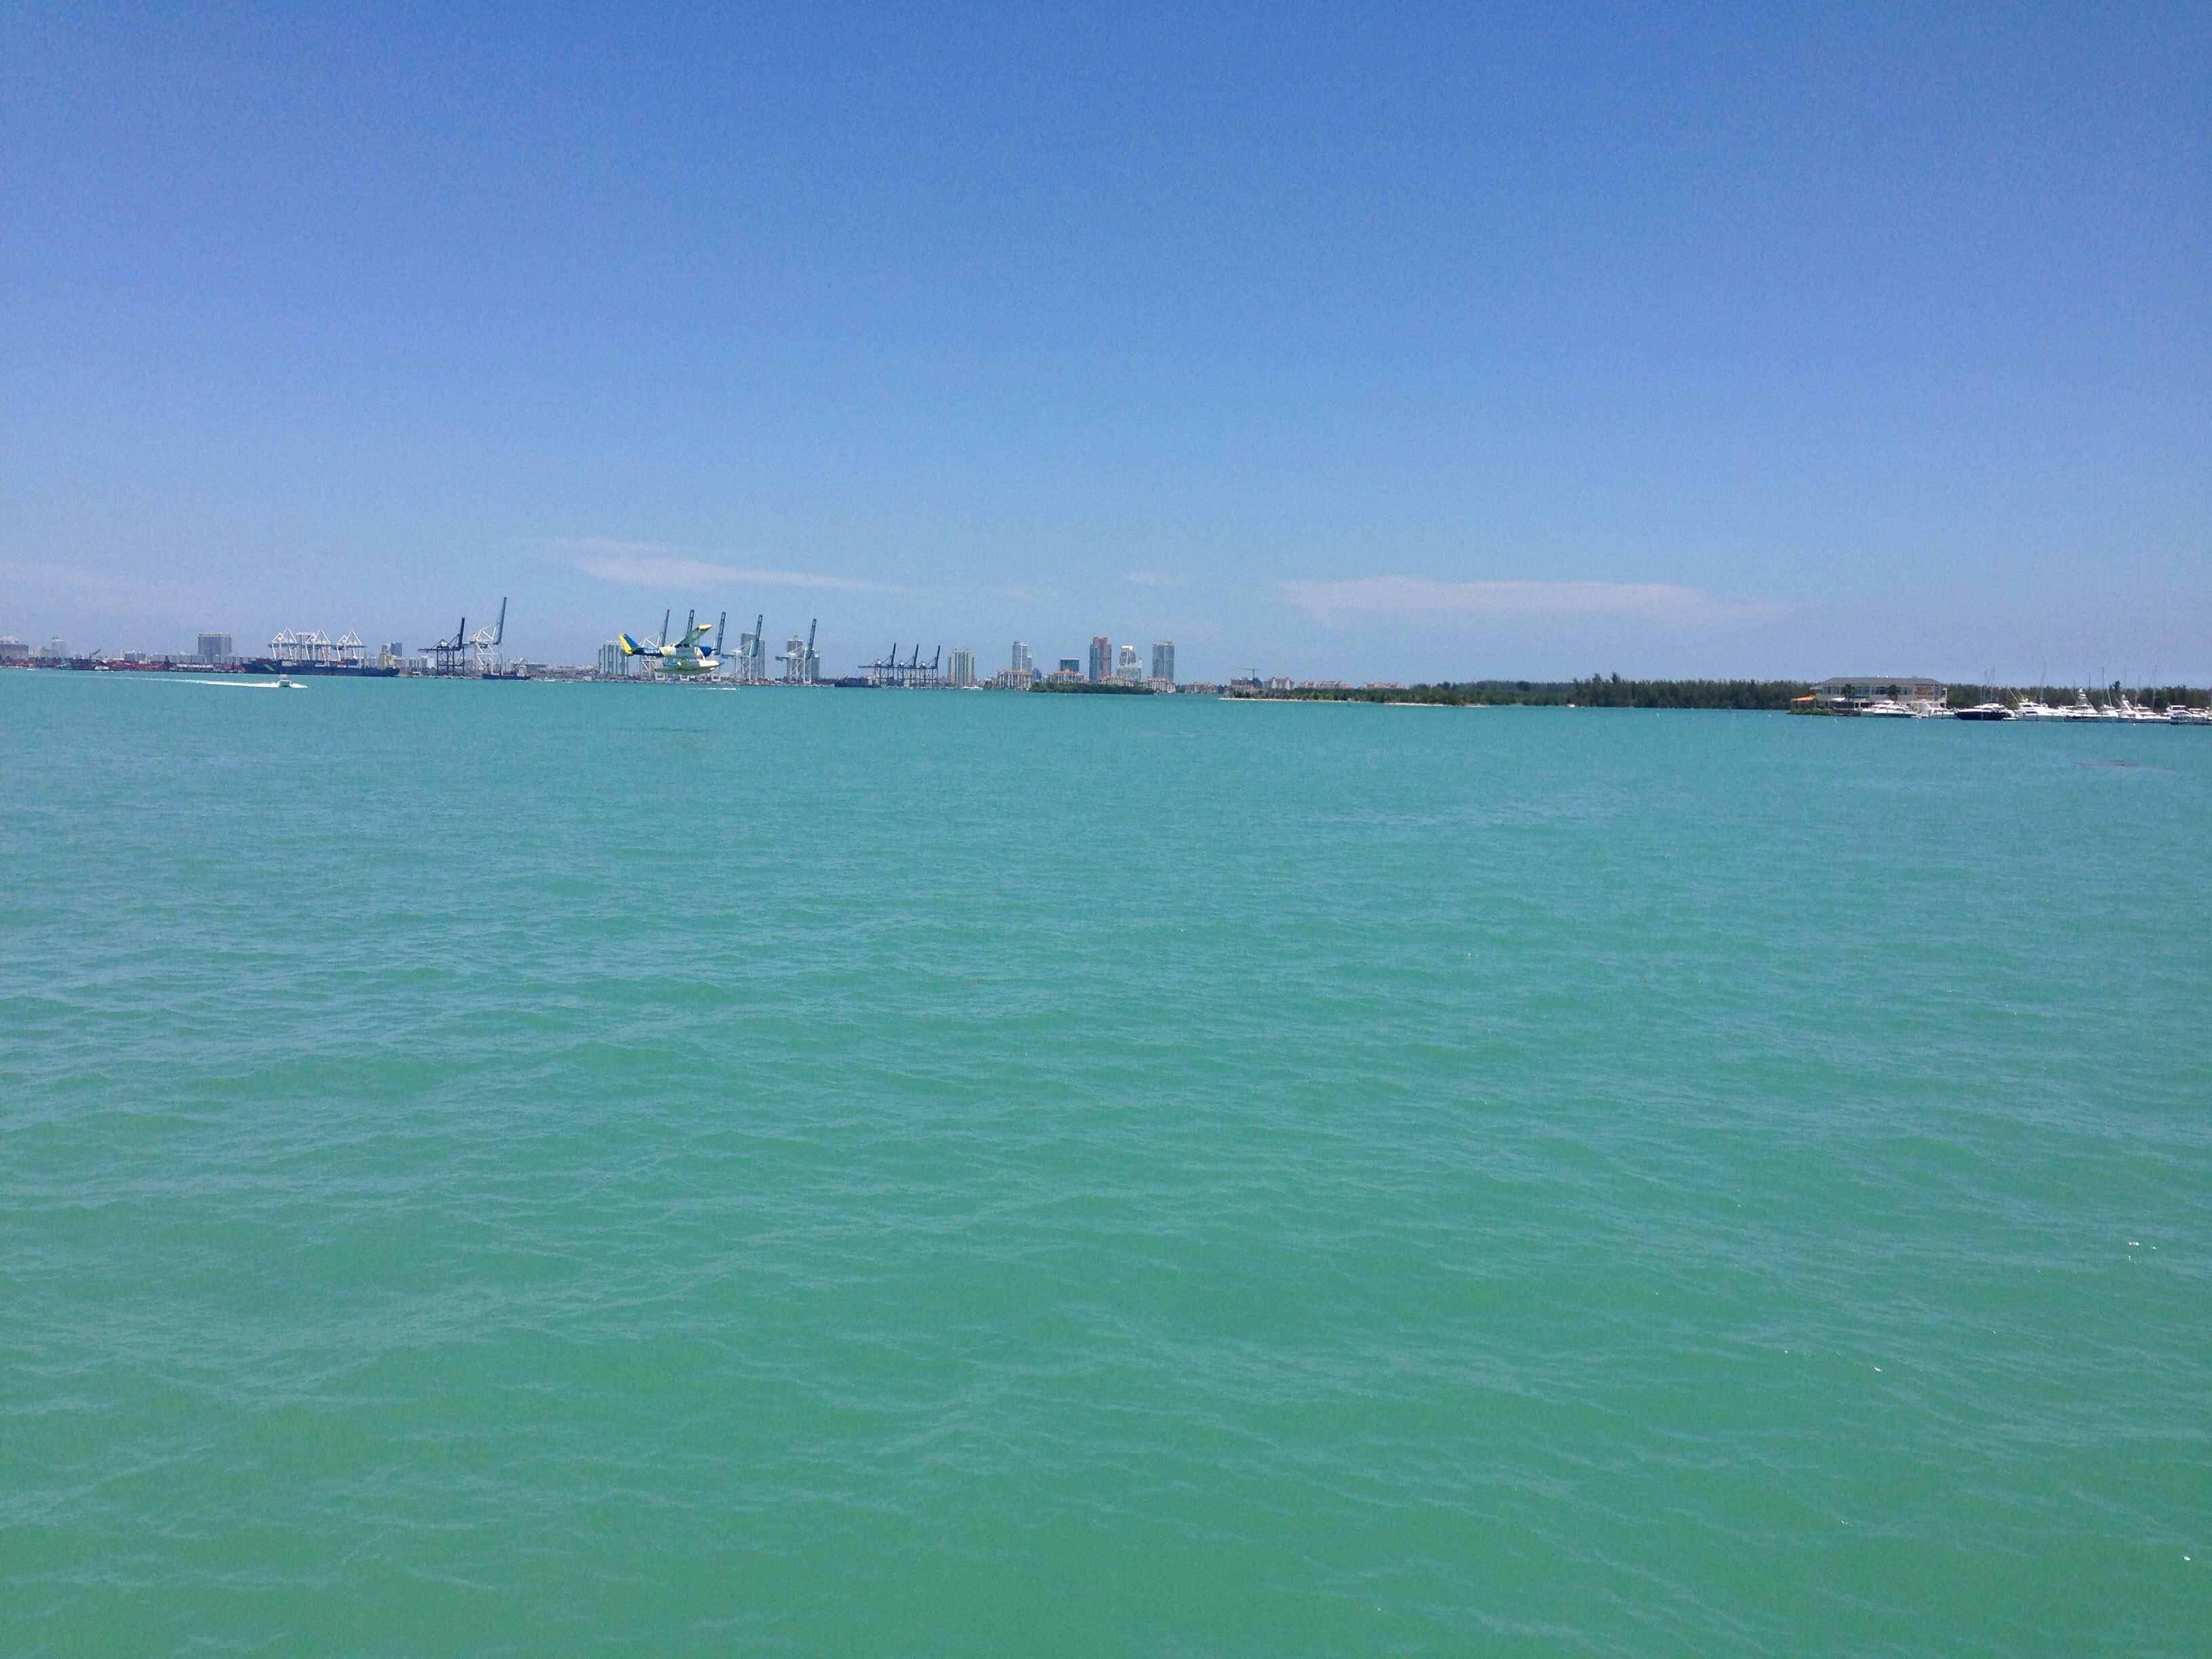 Water in Key Biscayne from Miami